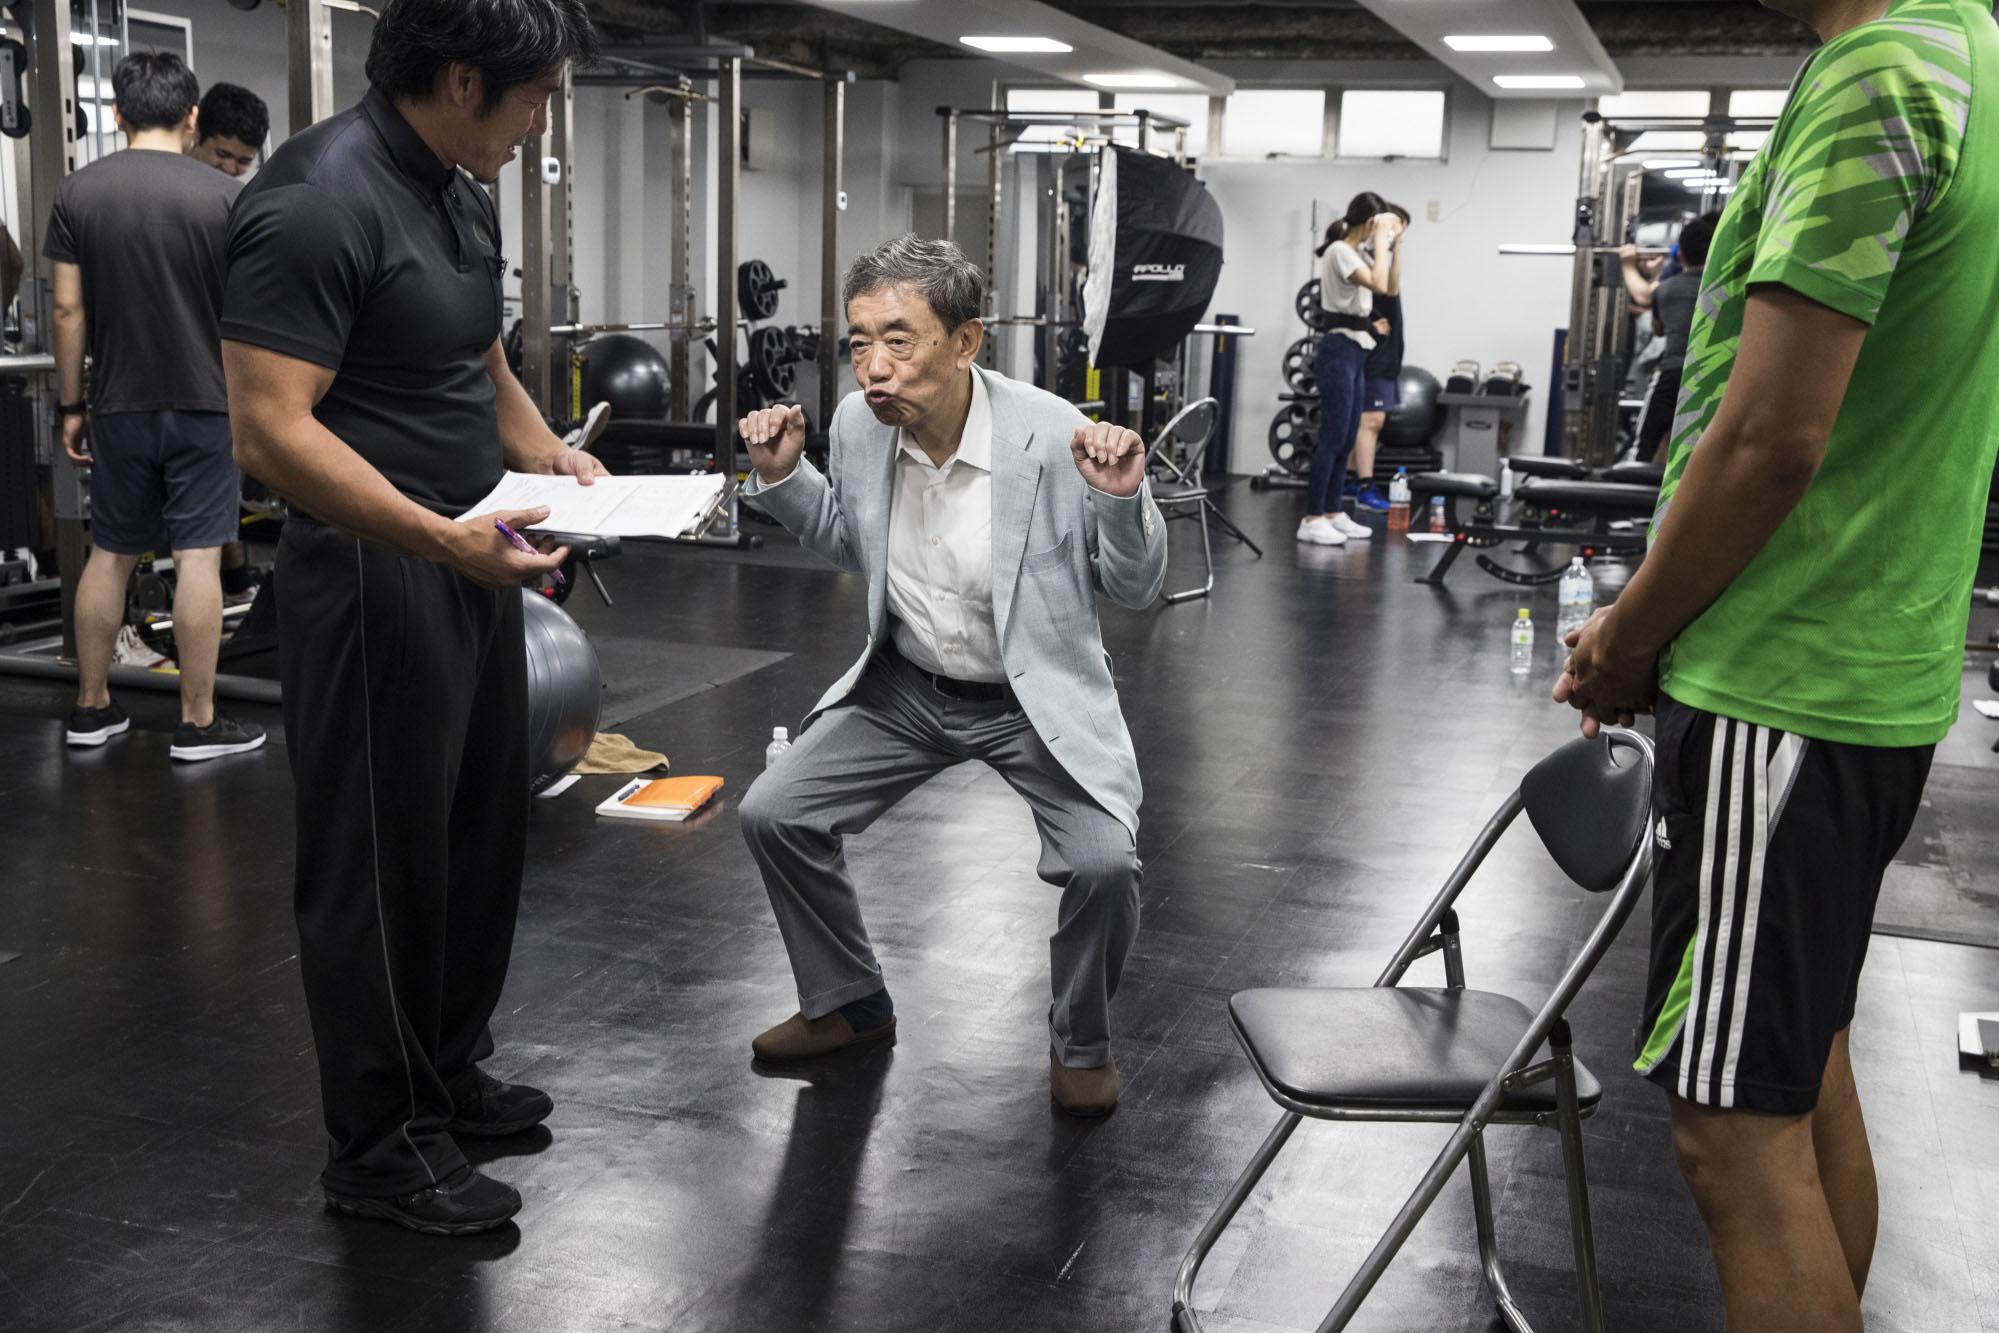 Former Calbee Inc. Chairman and current Rizap Chief Operating Officer Akira Matsumoto participates in a training session for Rizap employees on Aug. 2 in Tokyo. | BLOOMBERG